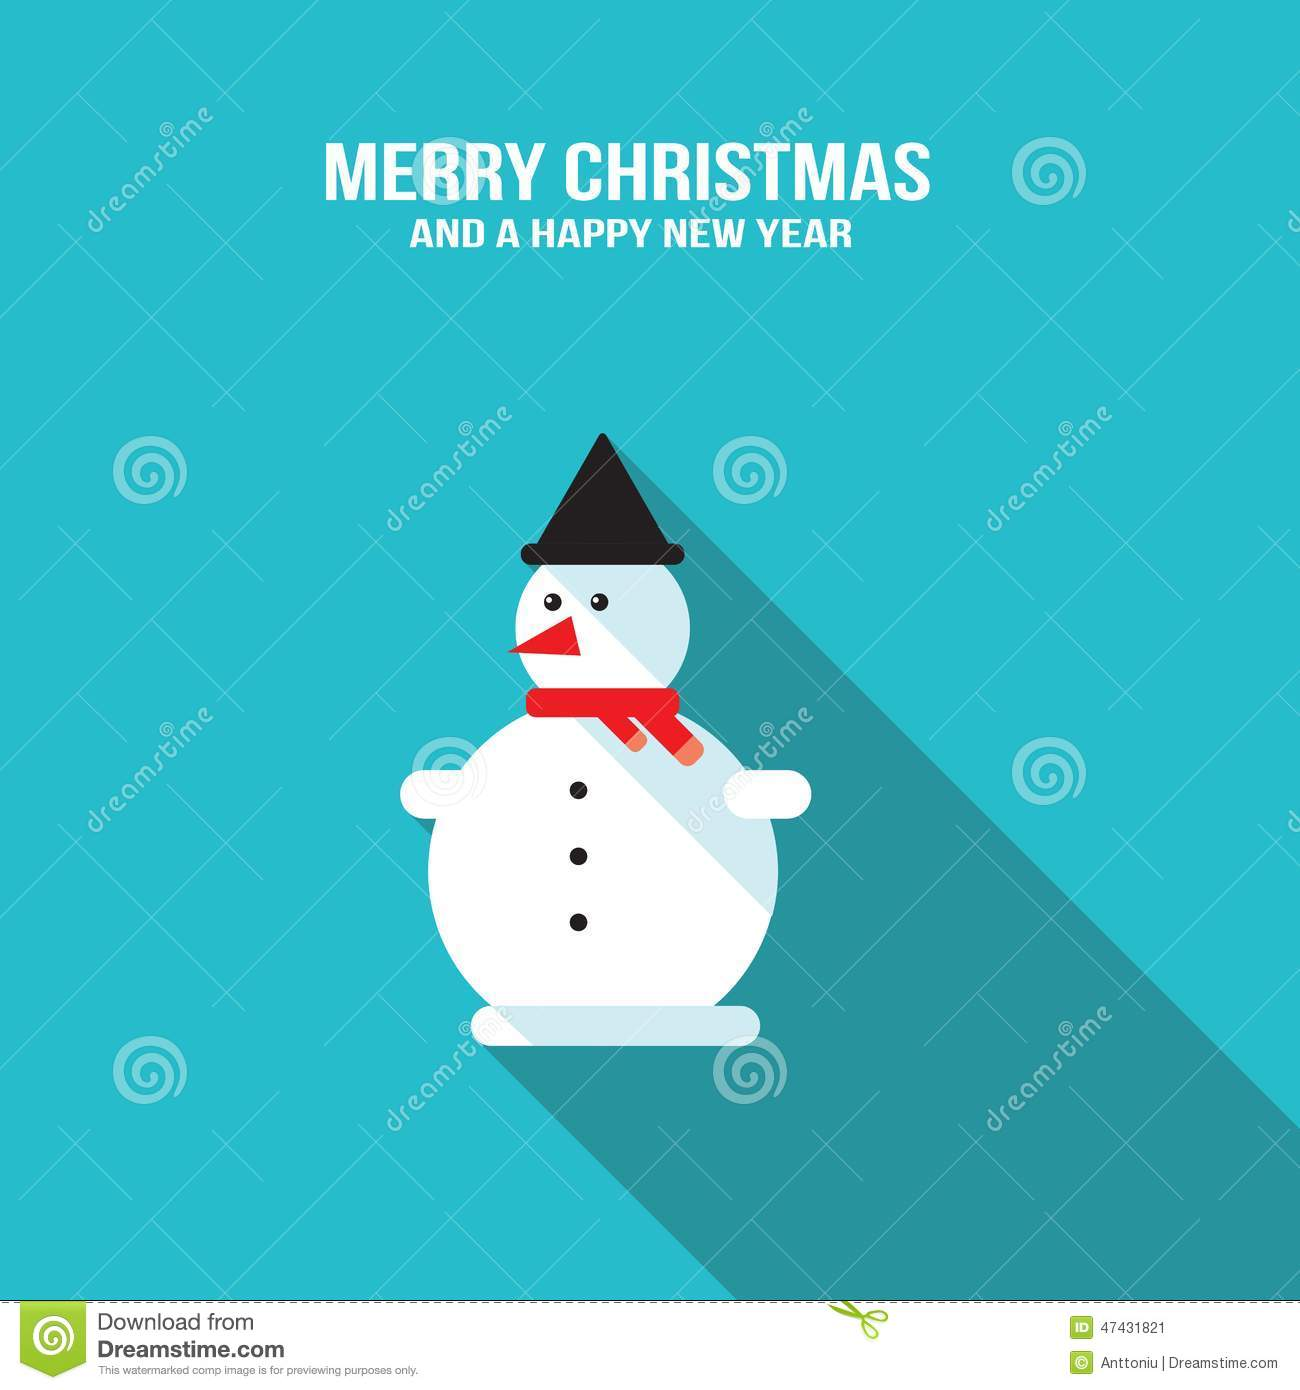 Cute Snowman Merry Christmas And Happy New Year Greeting Card Stock ...